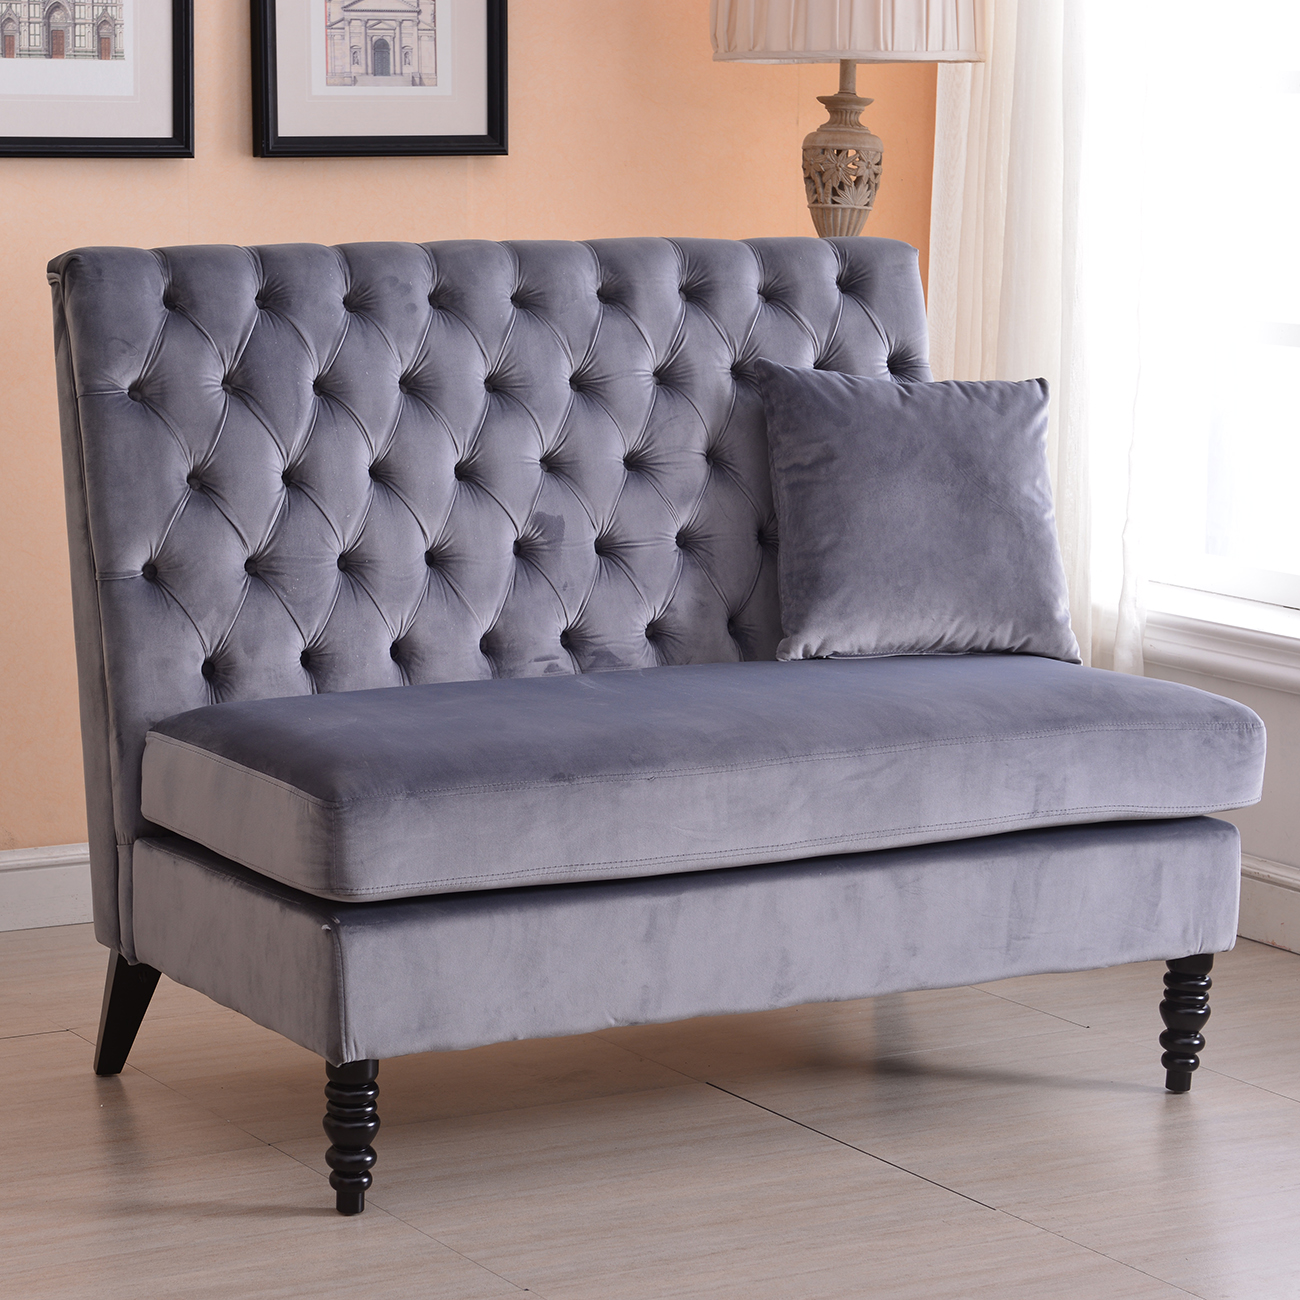 Belleze Modern Button Tufted Settee Bedroom Bench Loveseat Sofa Velvet, Gray